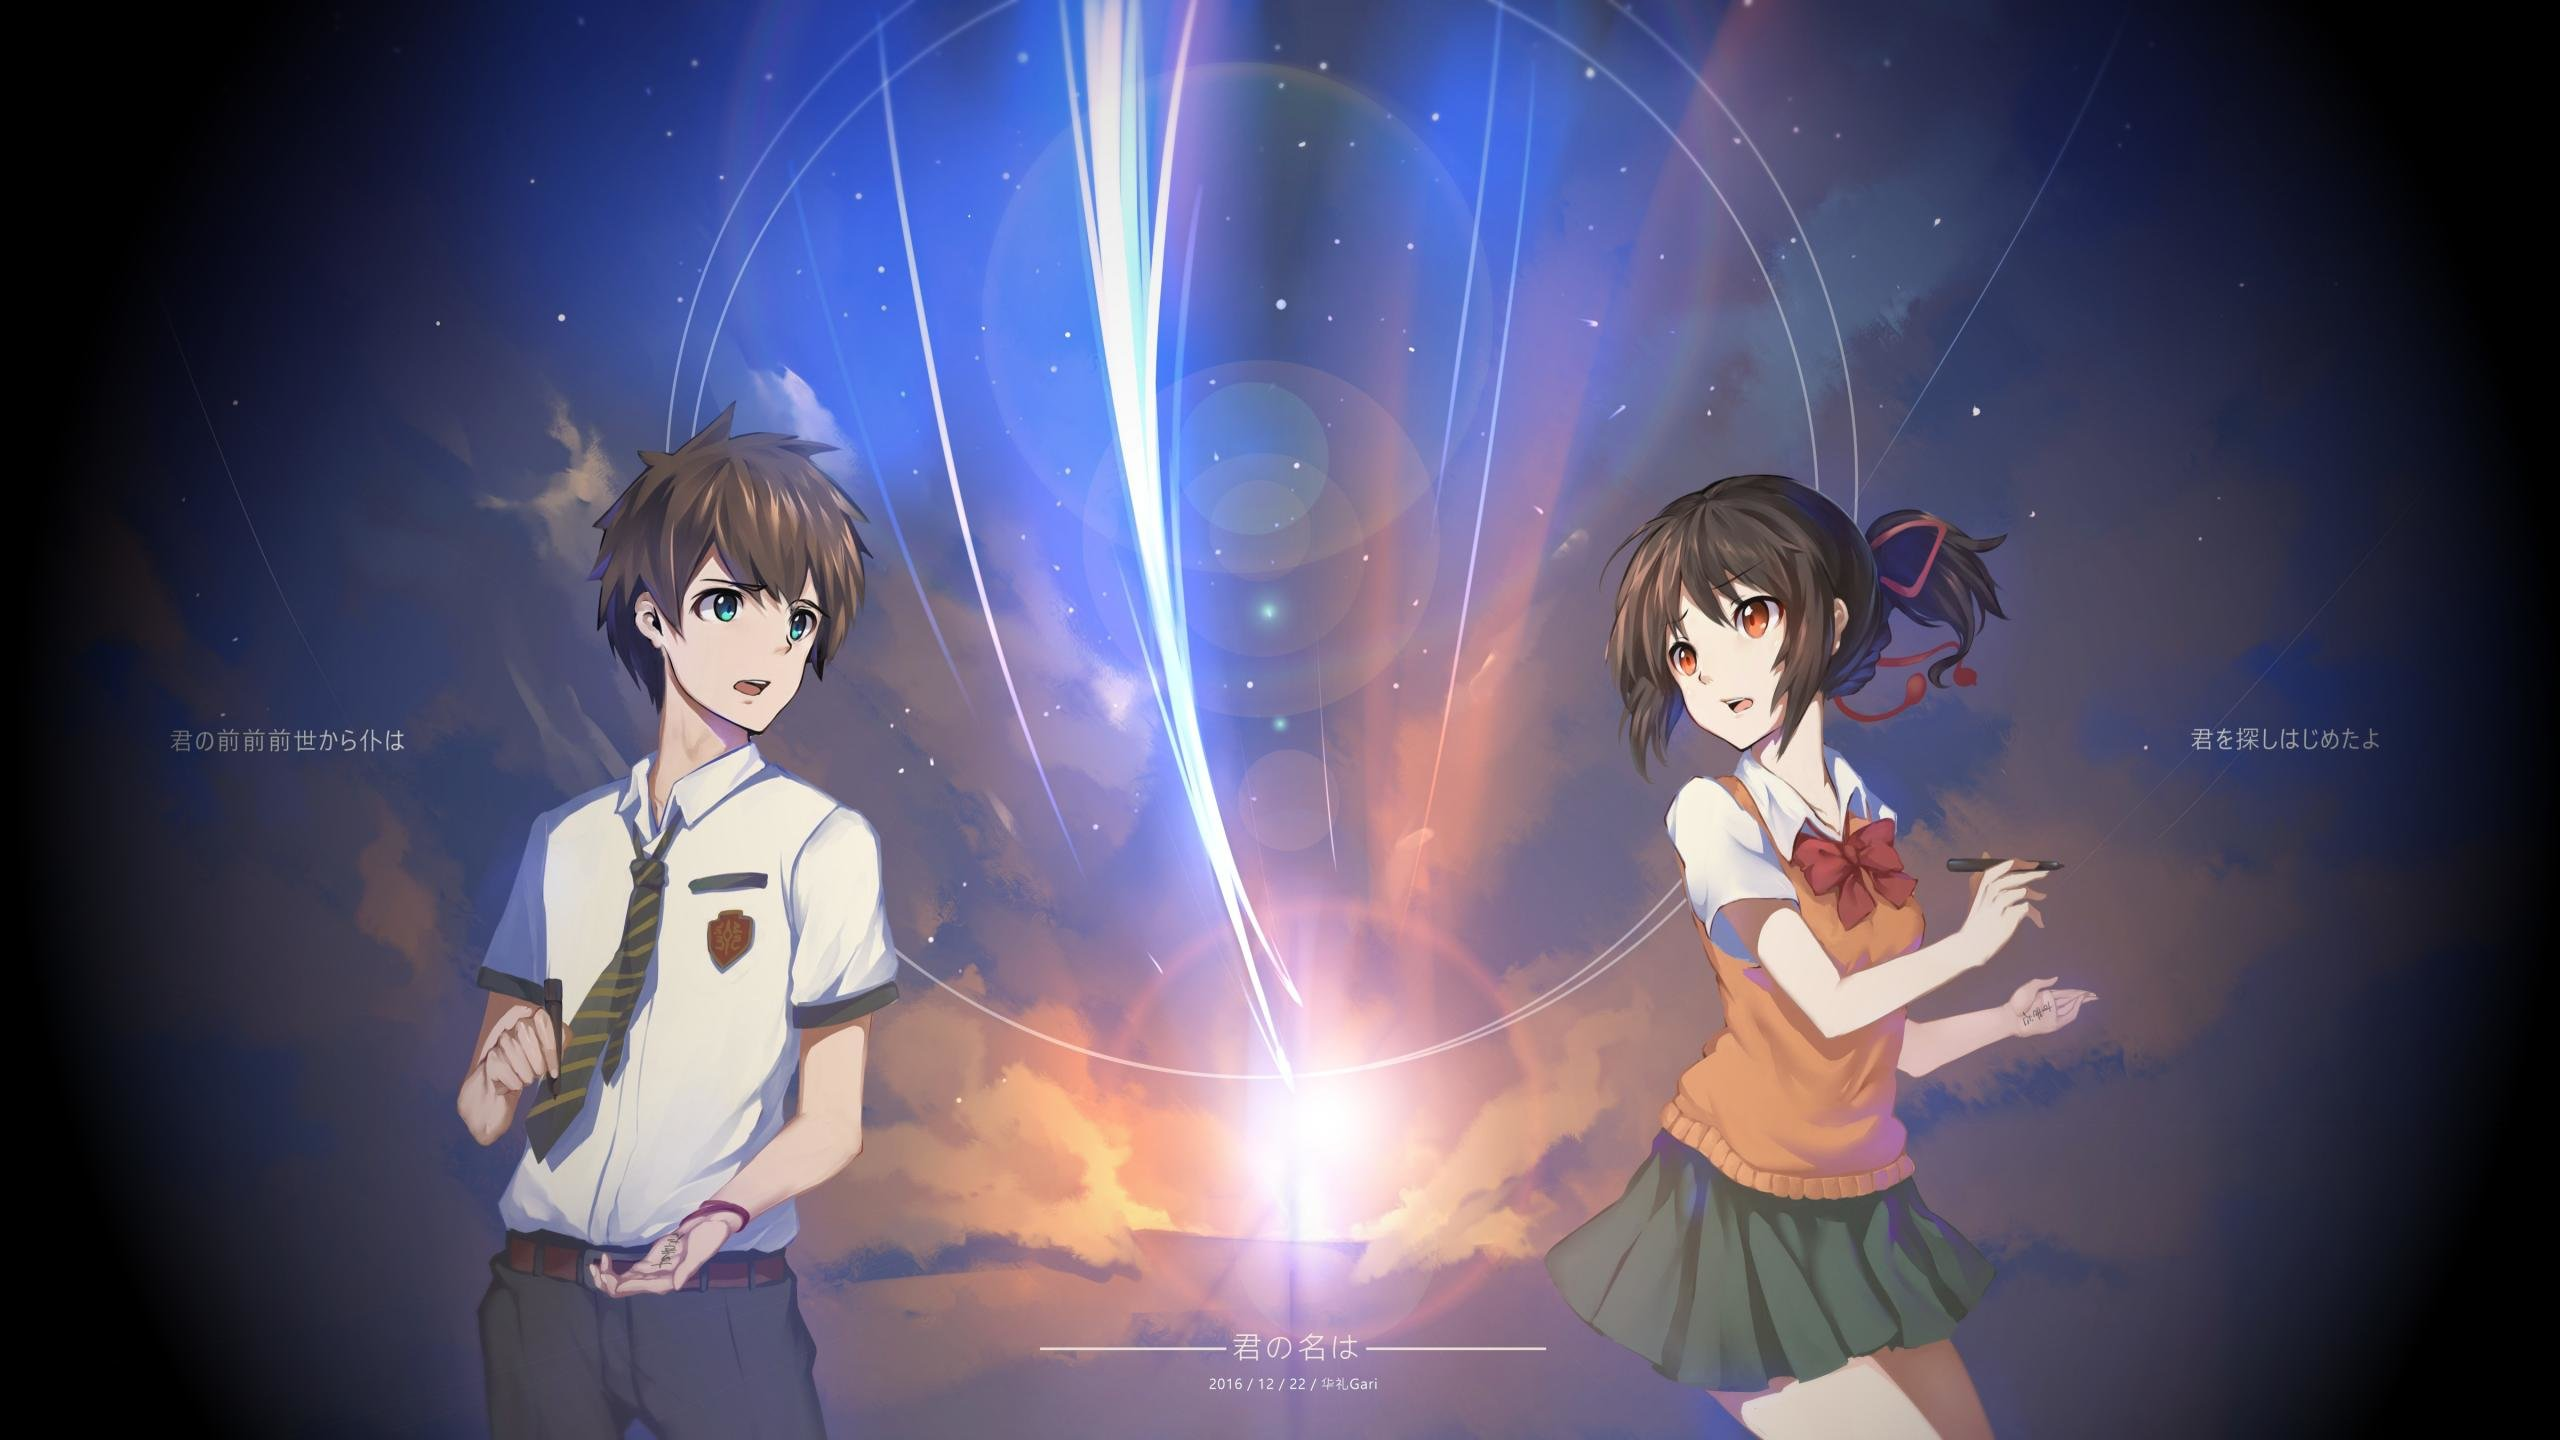 Awesome Your Name Free Background Id Anime Wallpaper 4k 2560x1440 Download Hd Wallpaper Wallpapertip